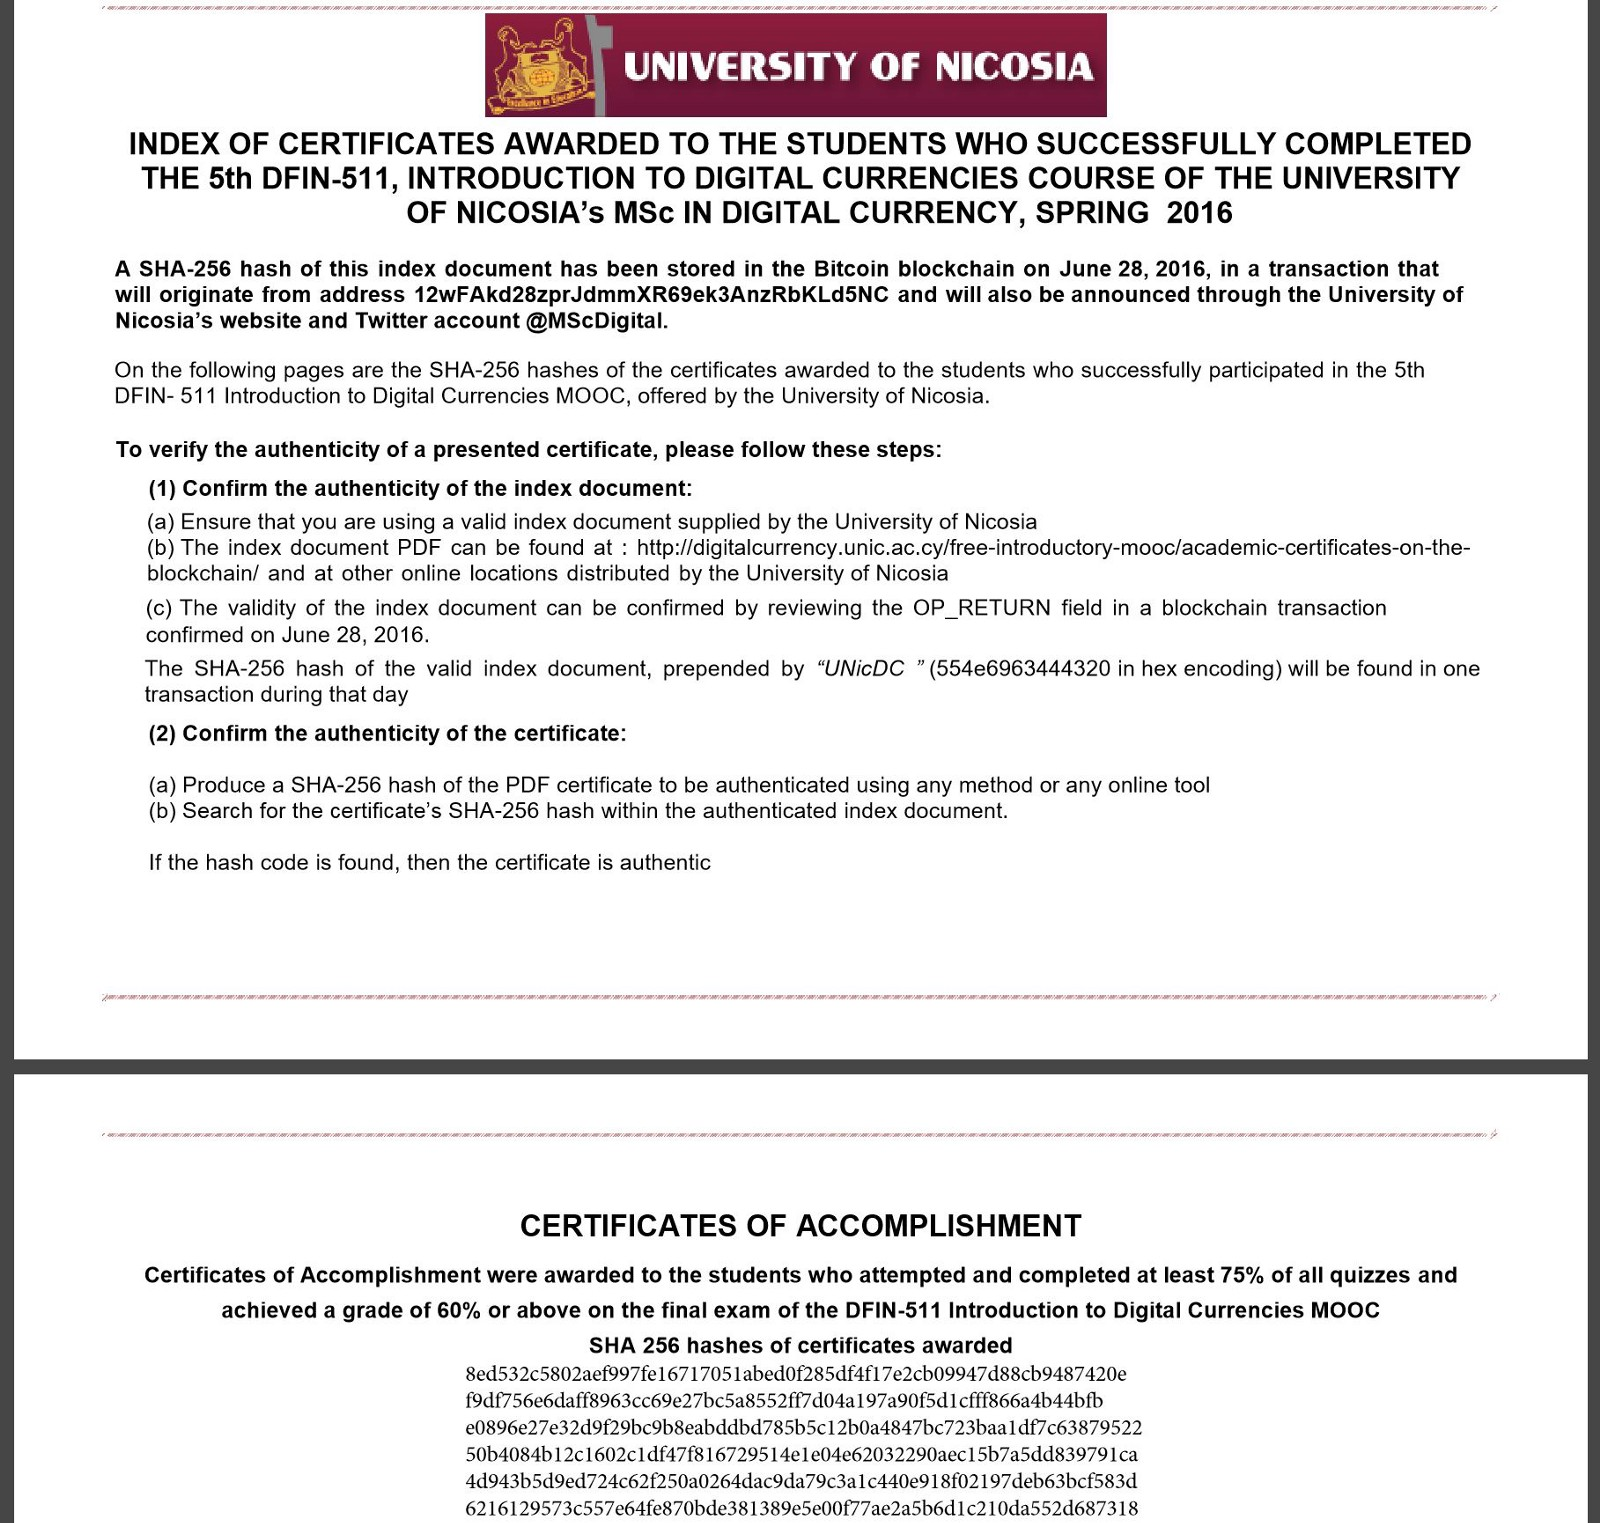 How Can Anyone Check The Authenticity Of My University Certificate